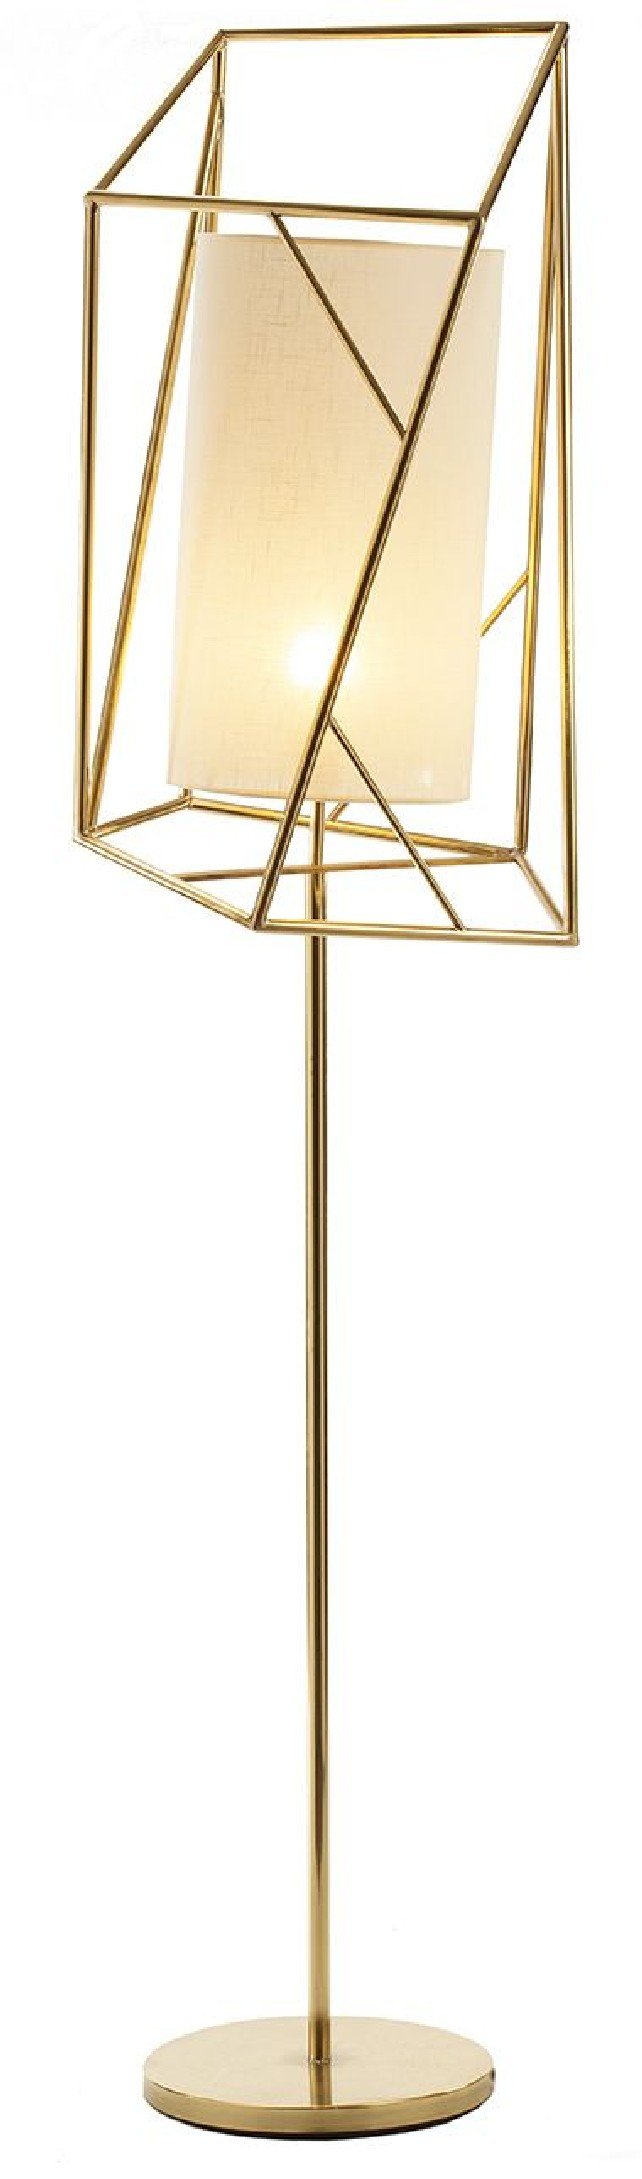 Floor lamp Star III, #design by Claudia Melo for Mambo's ETTERO Collection  Floor lamp Star III, Claudia Melo for Mambo's ETTERO Collection Floor lamp Star III design by Claudia Melo for Mambos ETTERO Collection